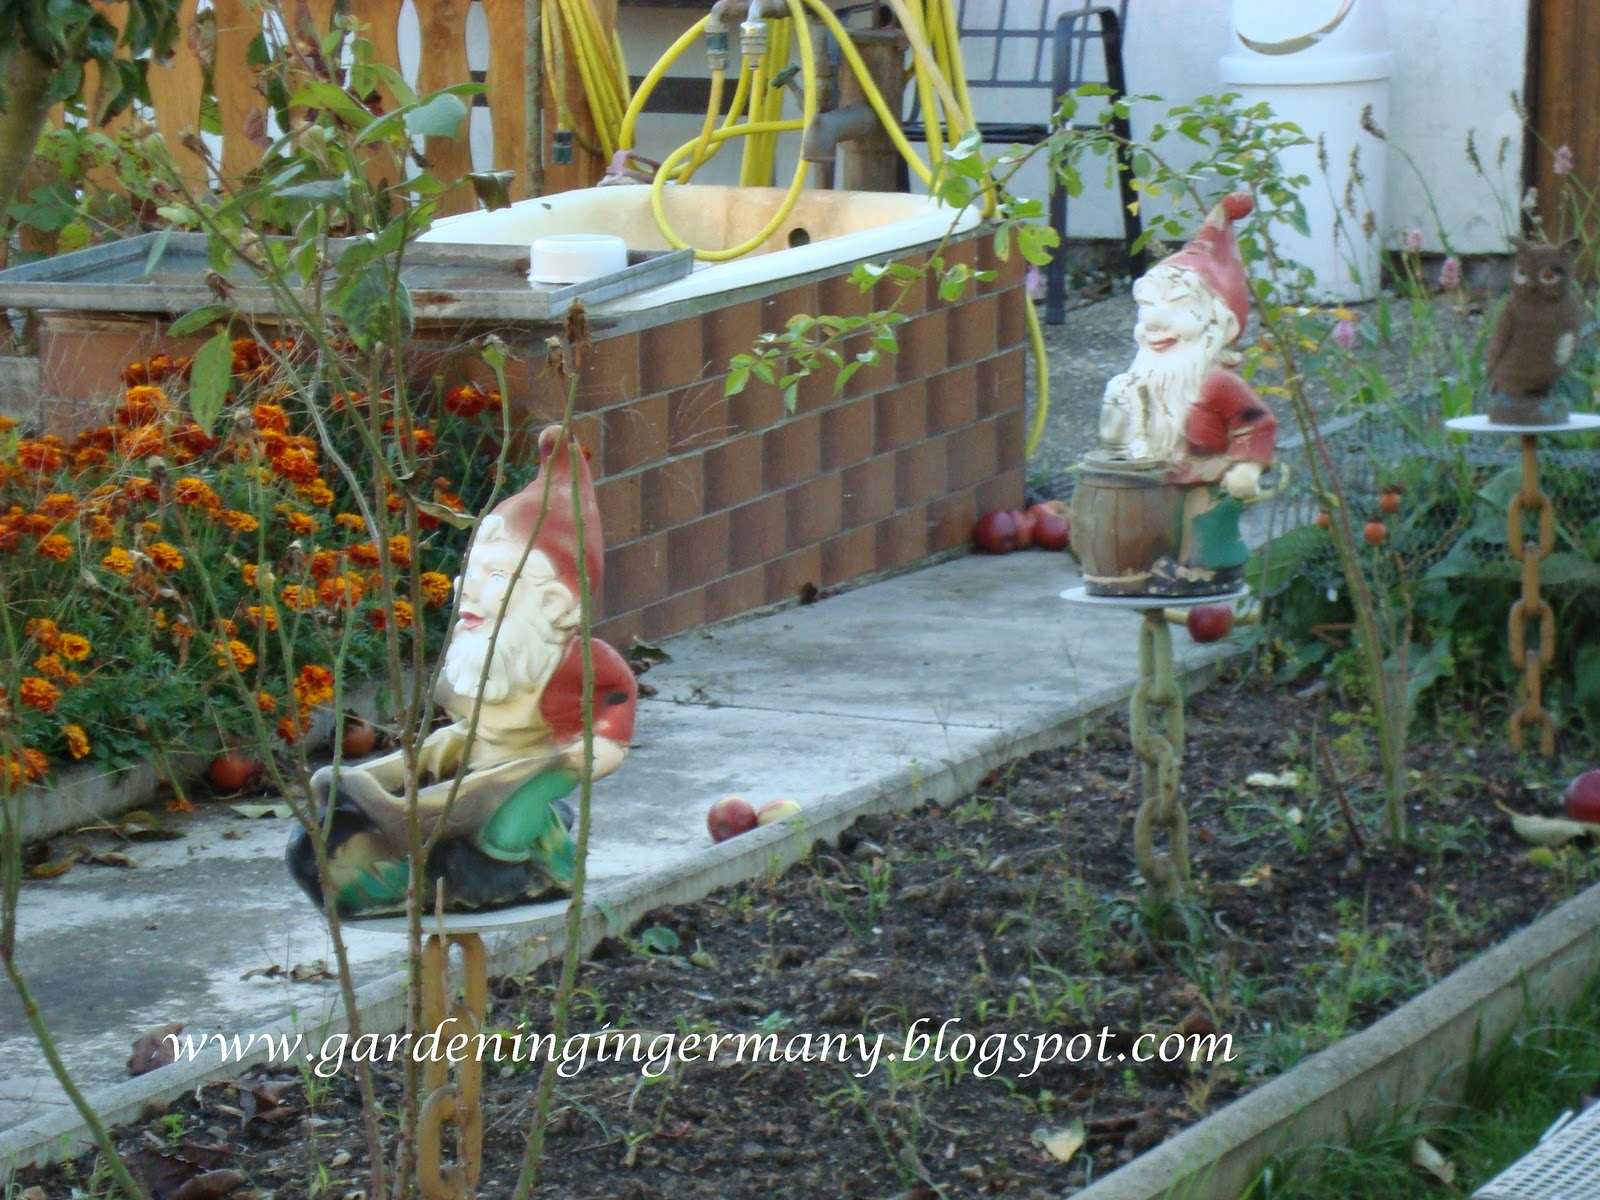 gardening in mannheim germany a gnome u0027s tale of discrimination